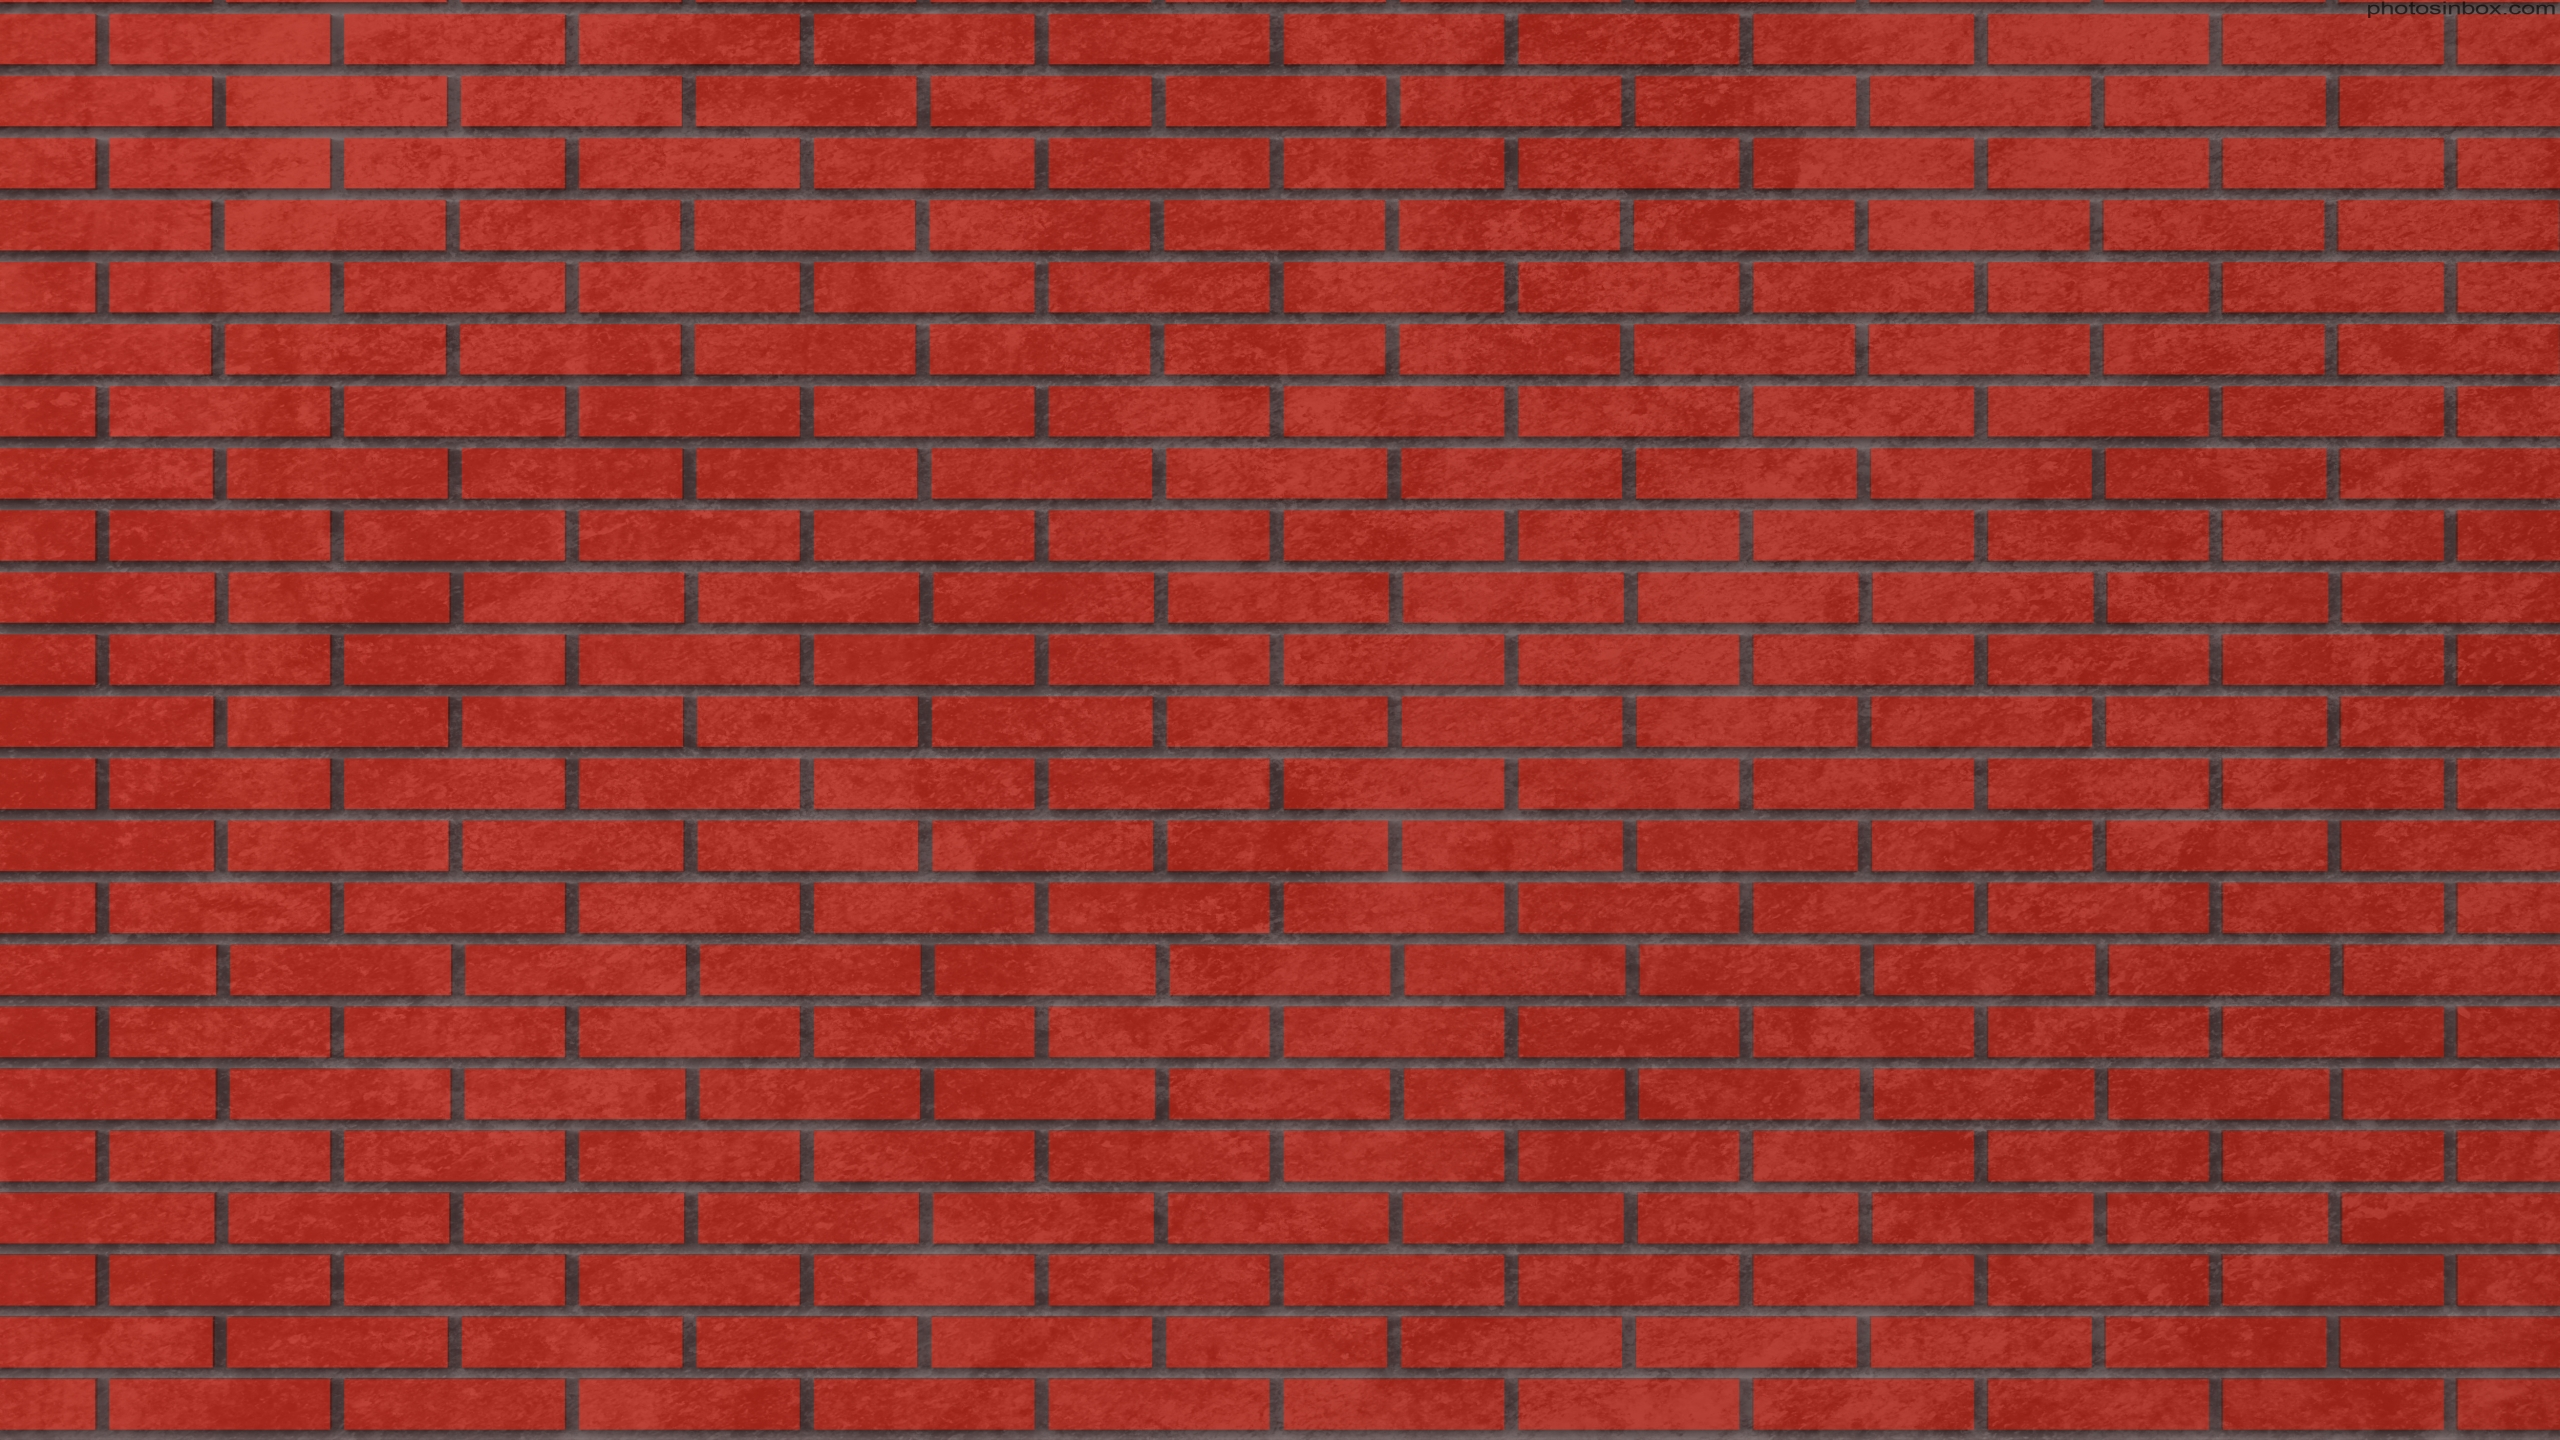 Red brick walls clipart clipground for Red wallpaper designs for walls